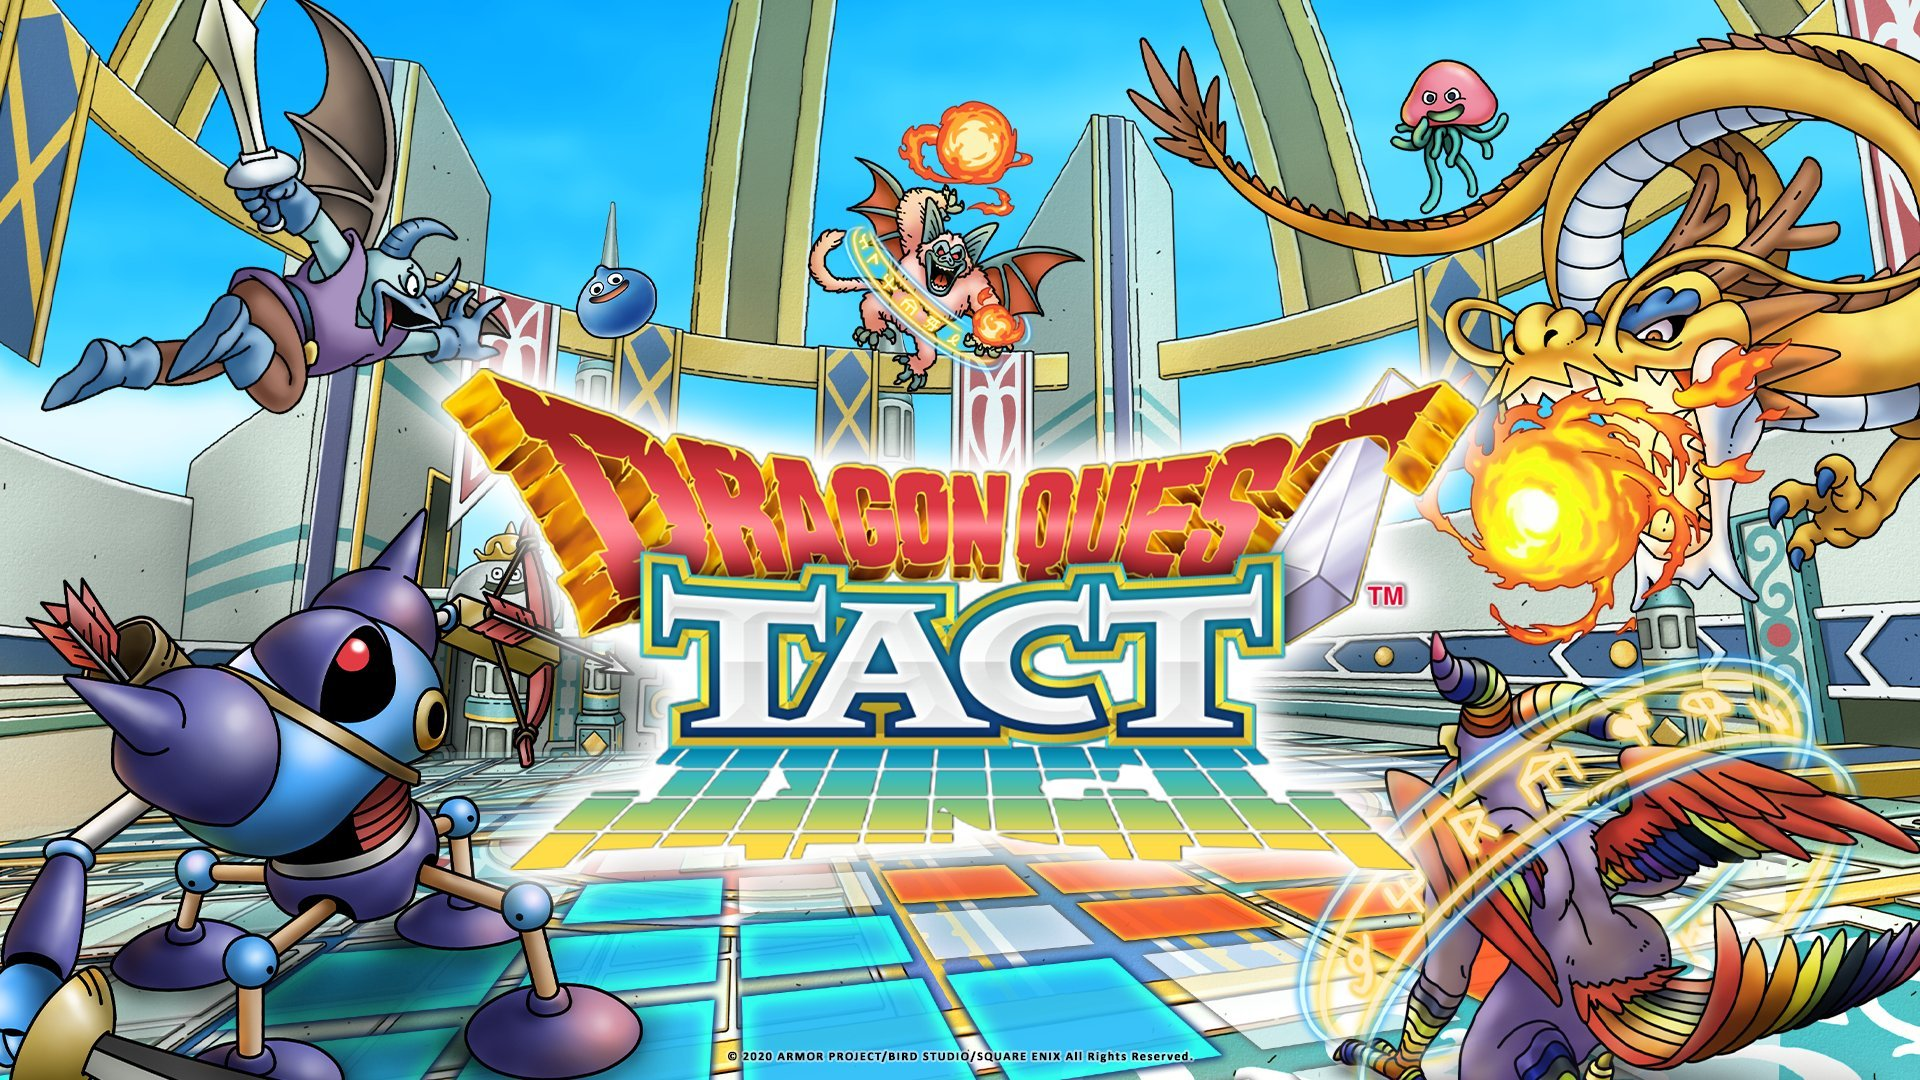 'Dragon Quest Tact' Is Getting an International Release on iOS and Android with Early Access Sign-Ups Now Live – TouchArcade